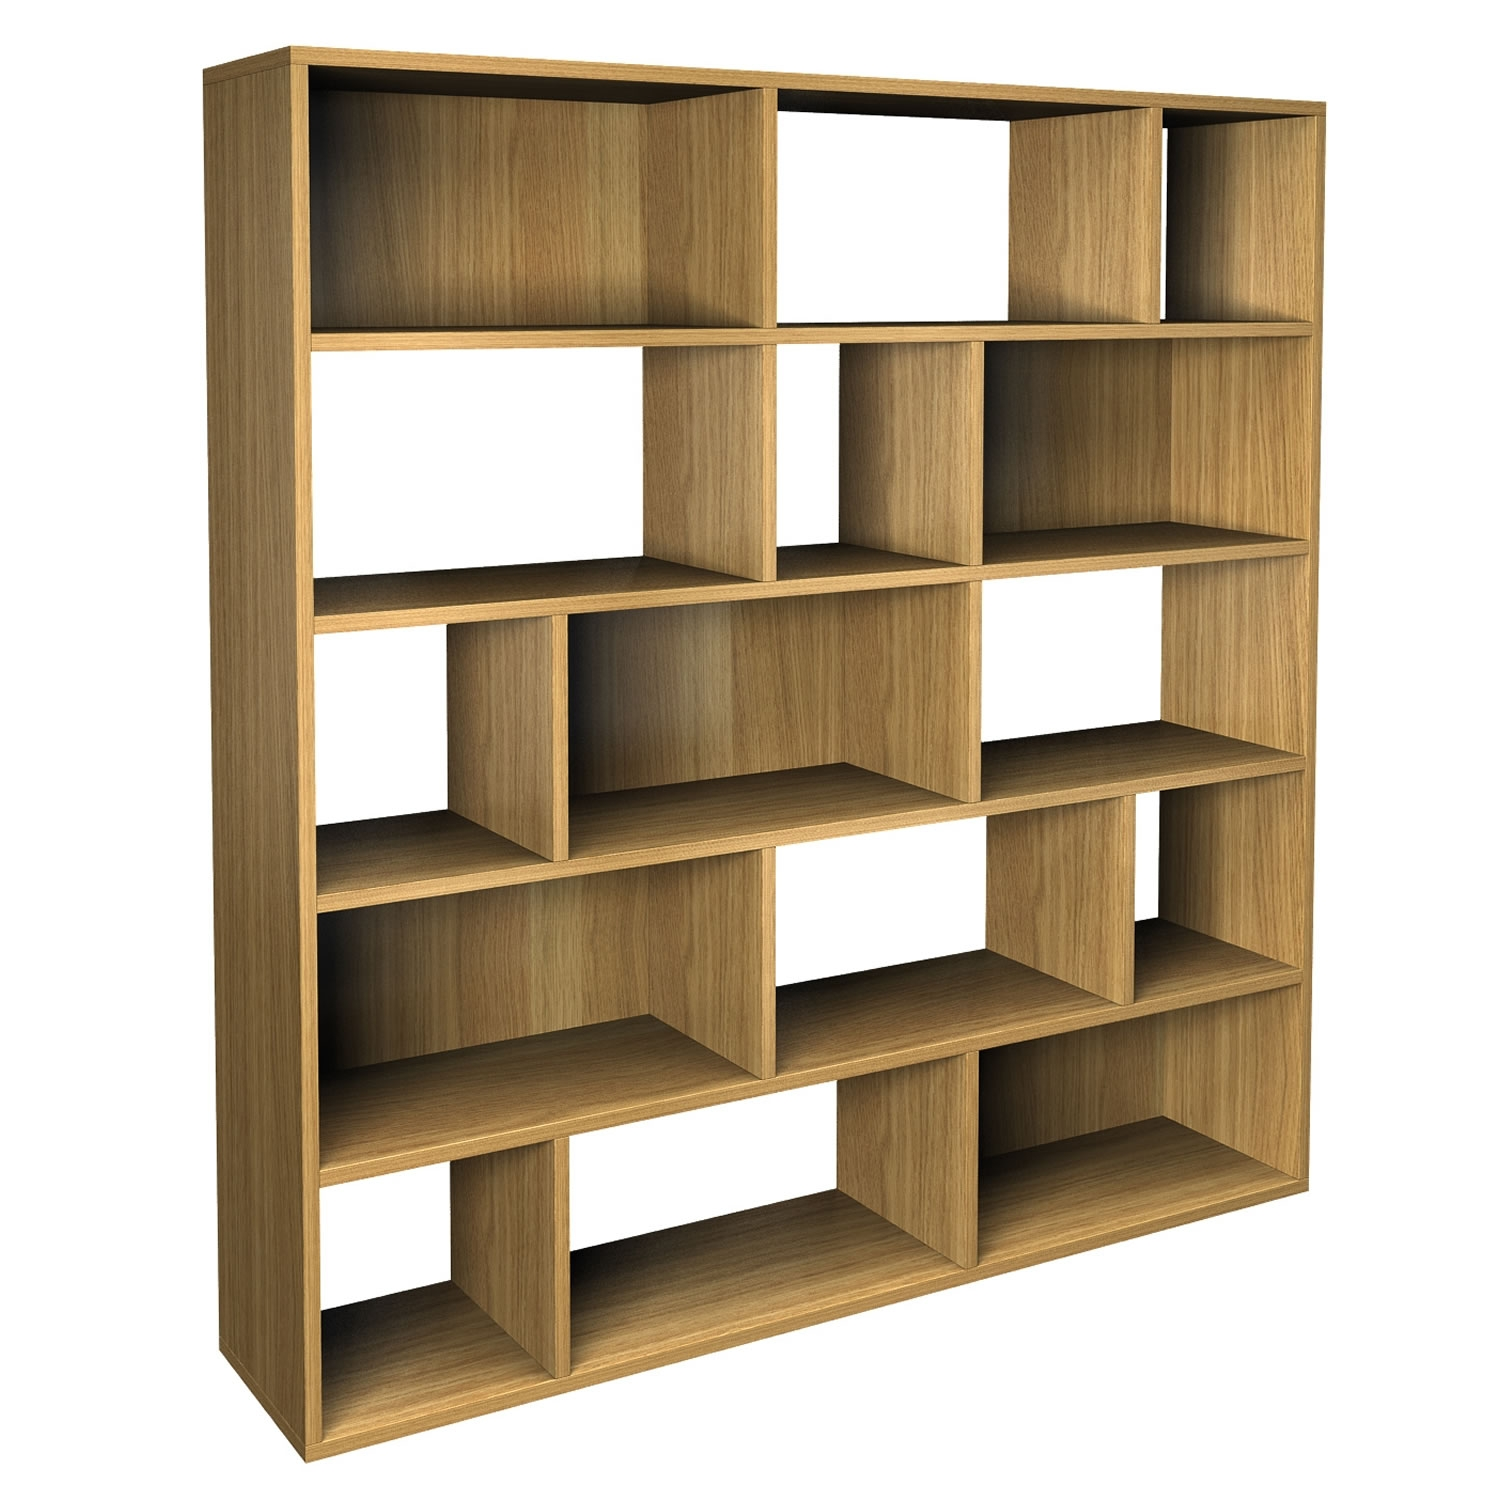 Furniture Simple Stylish Designs Pictures Of Creative Bookshelf With Regard To Bookshelves Designs For Home (#11 of 15)